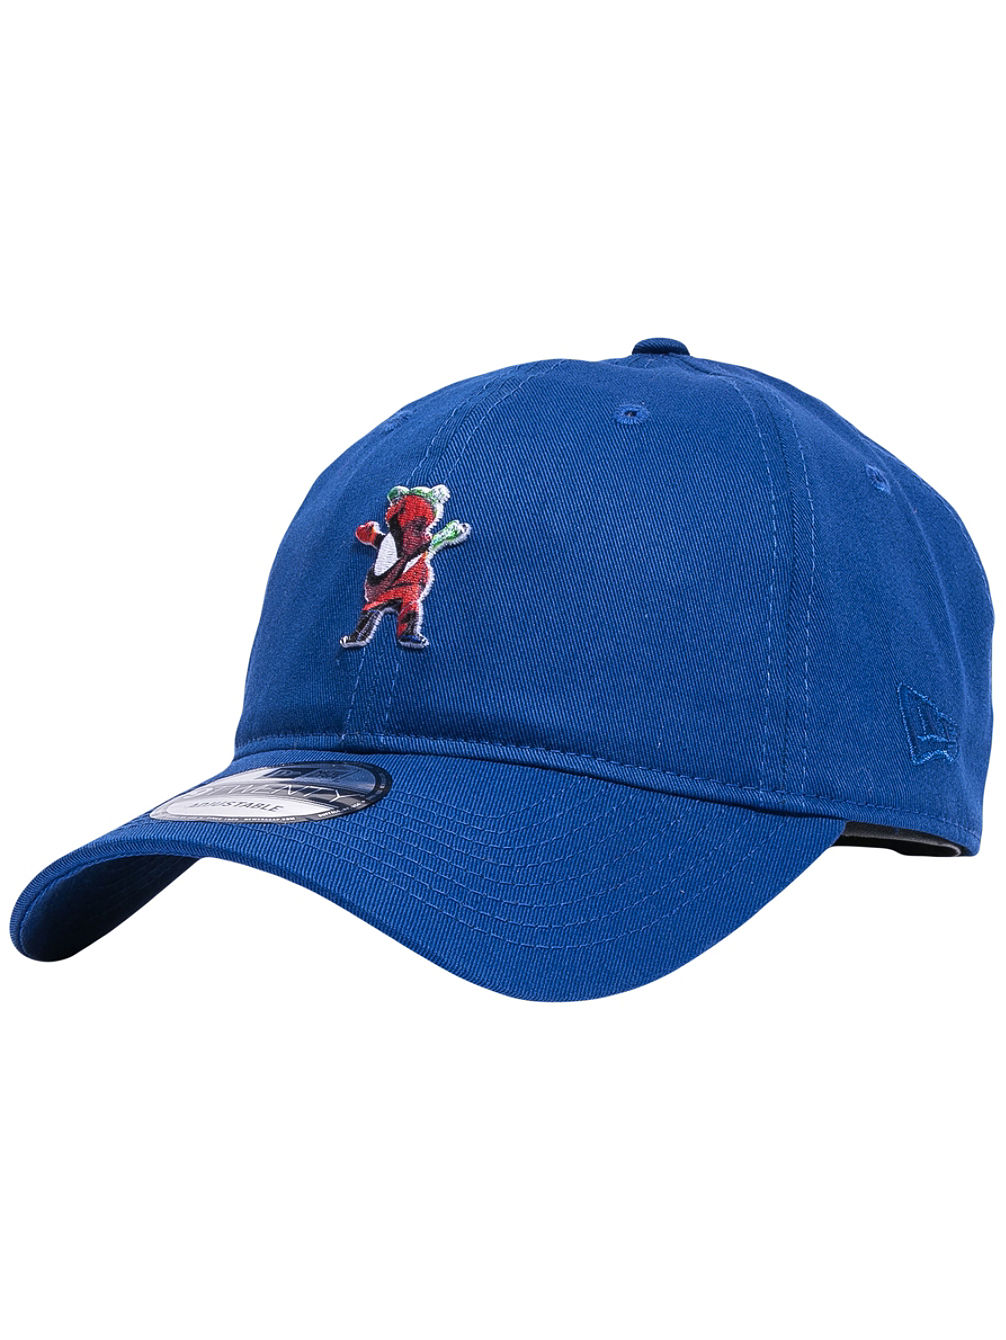 X Spiderman Cap